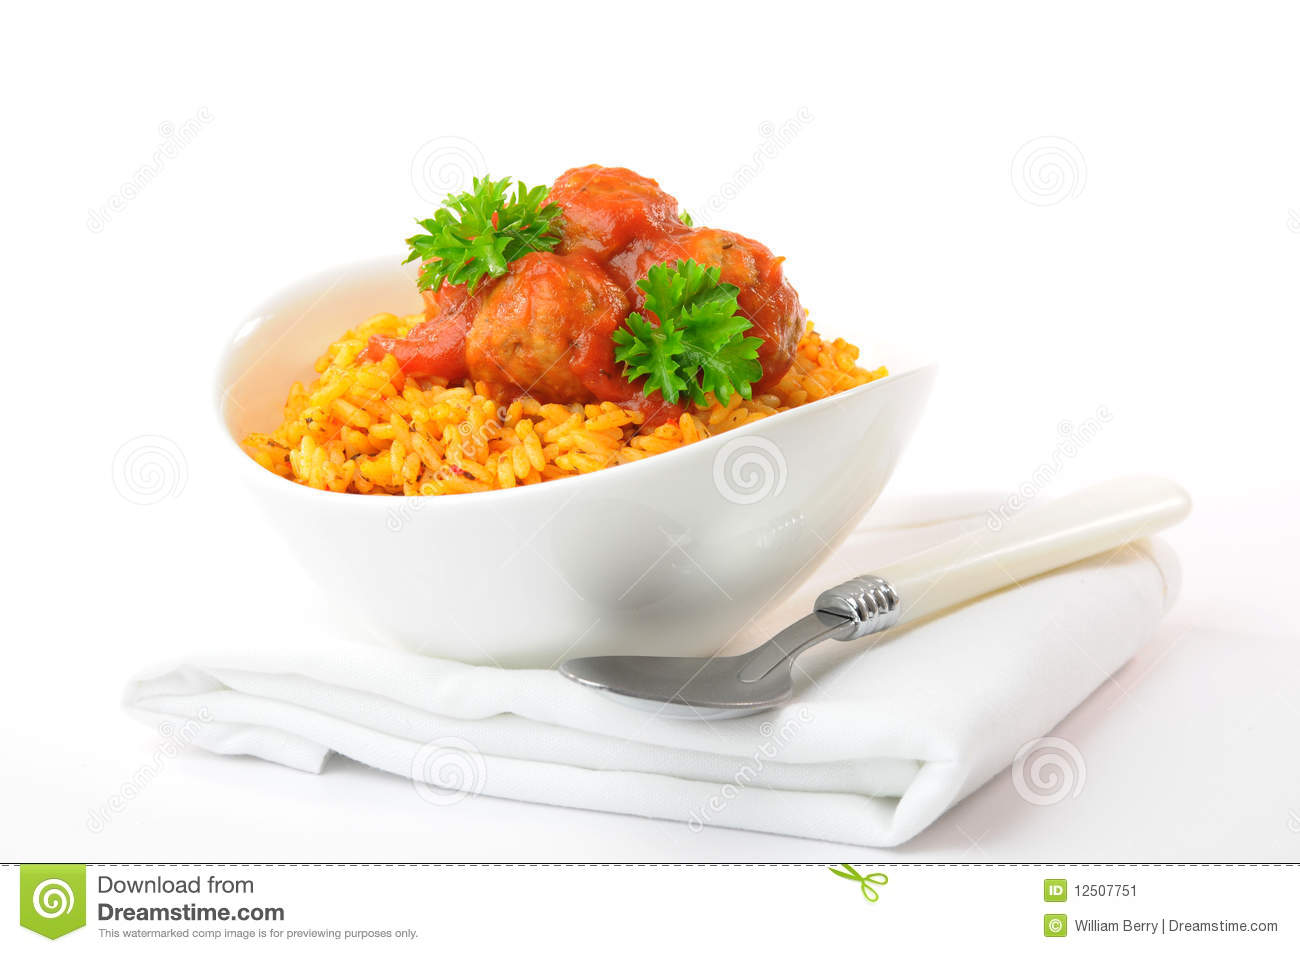 Meatballs And Tomato Sauce Stock Image - Image: 12507751